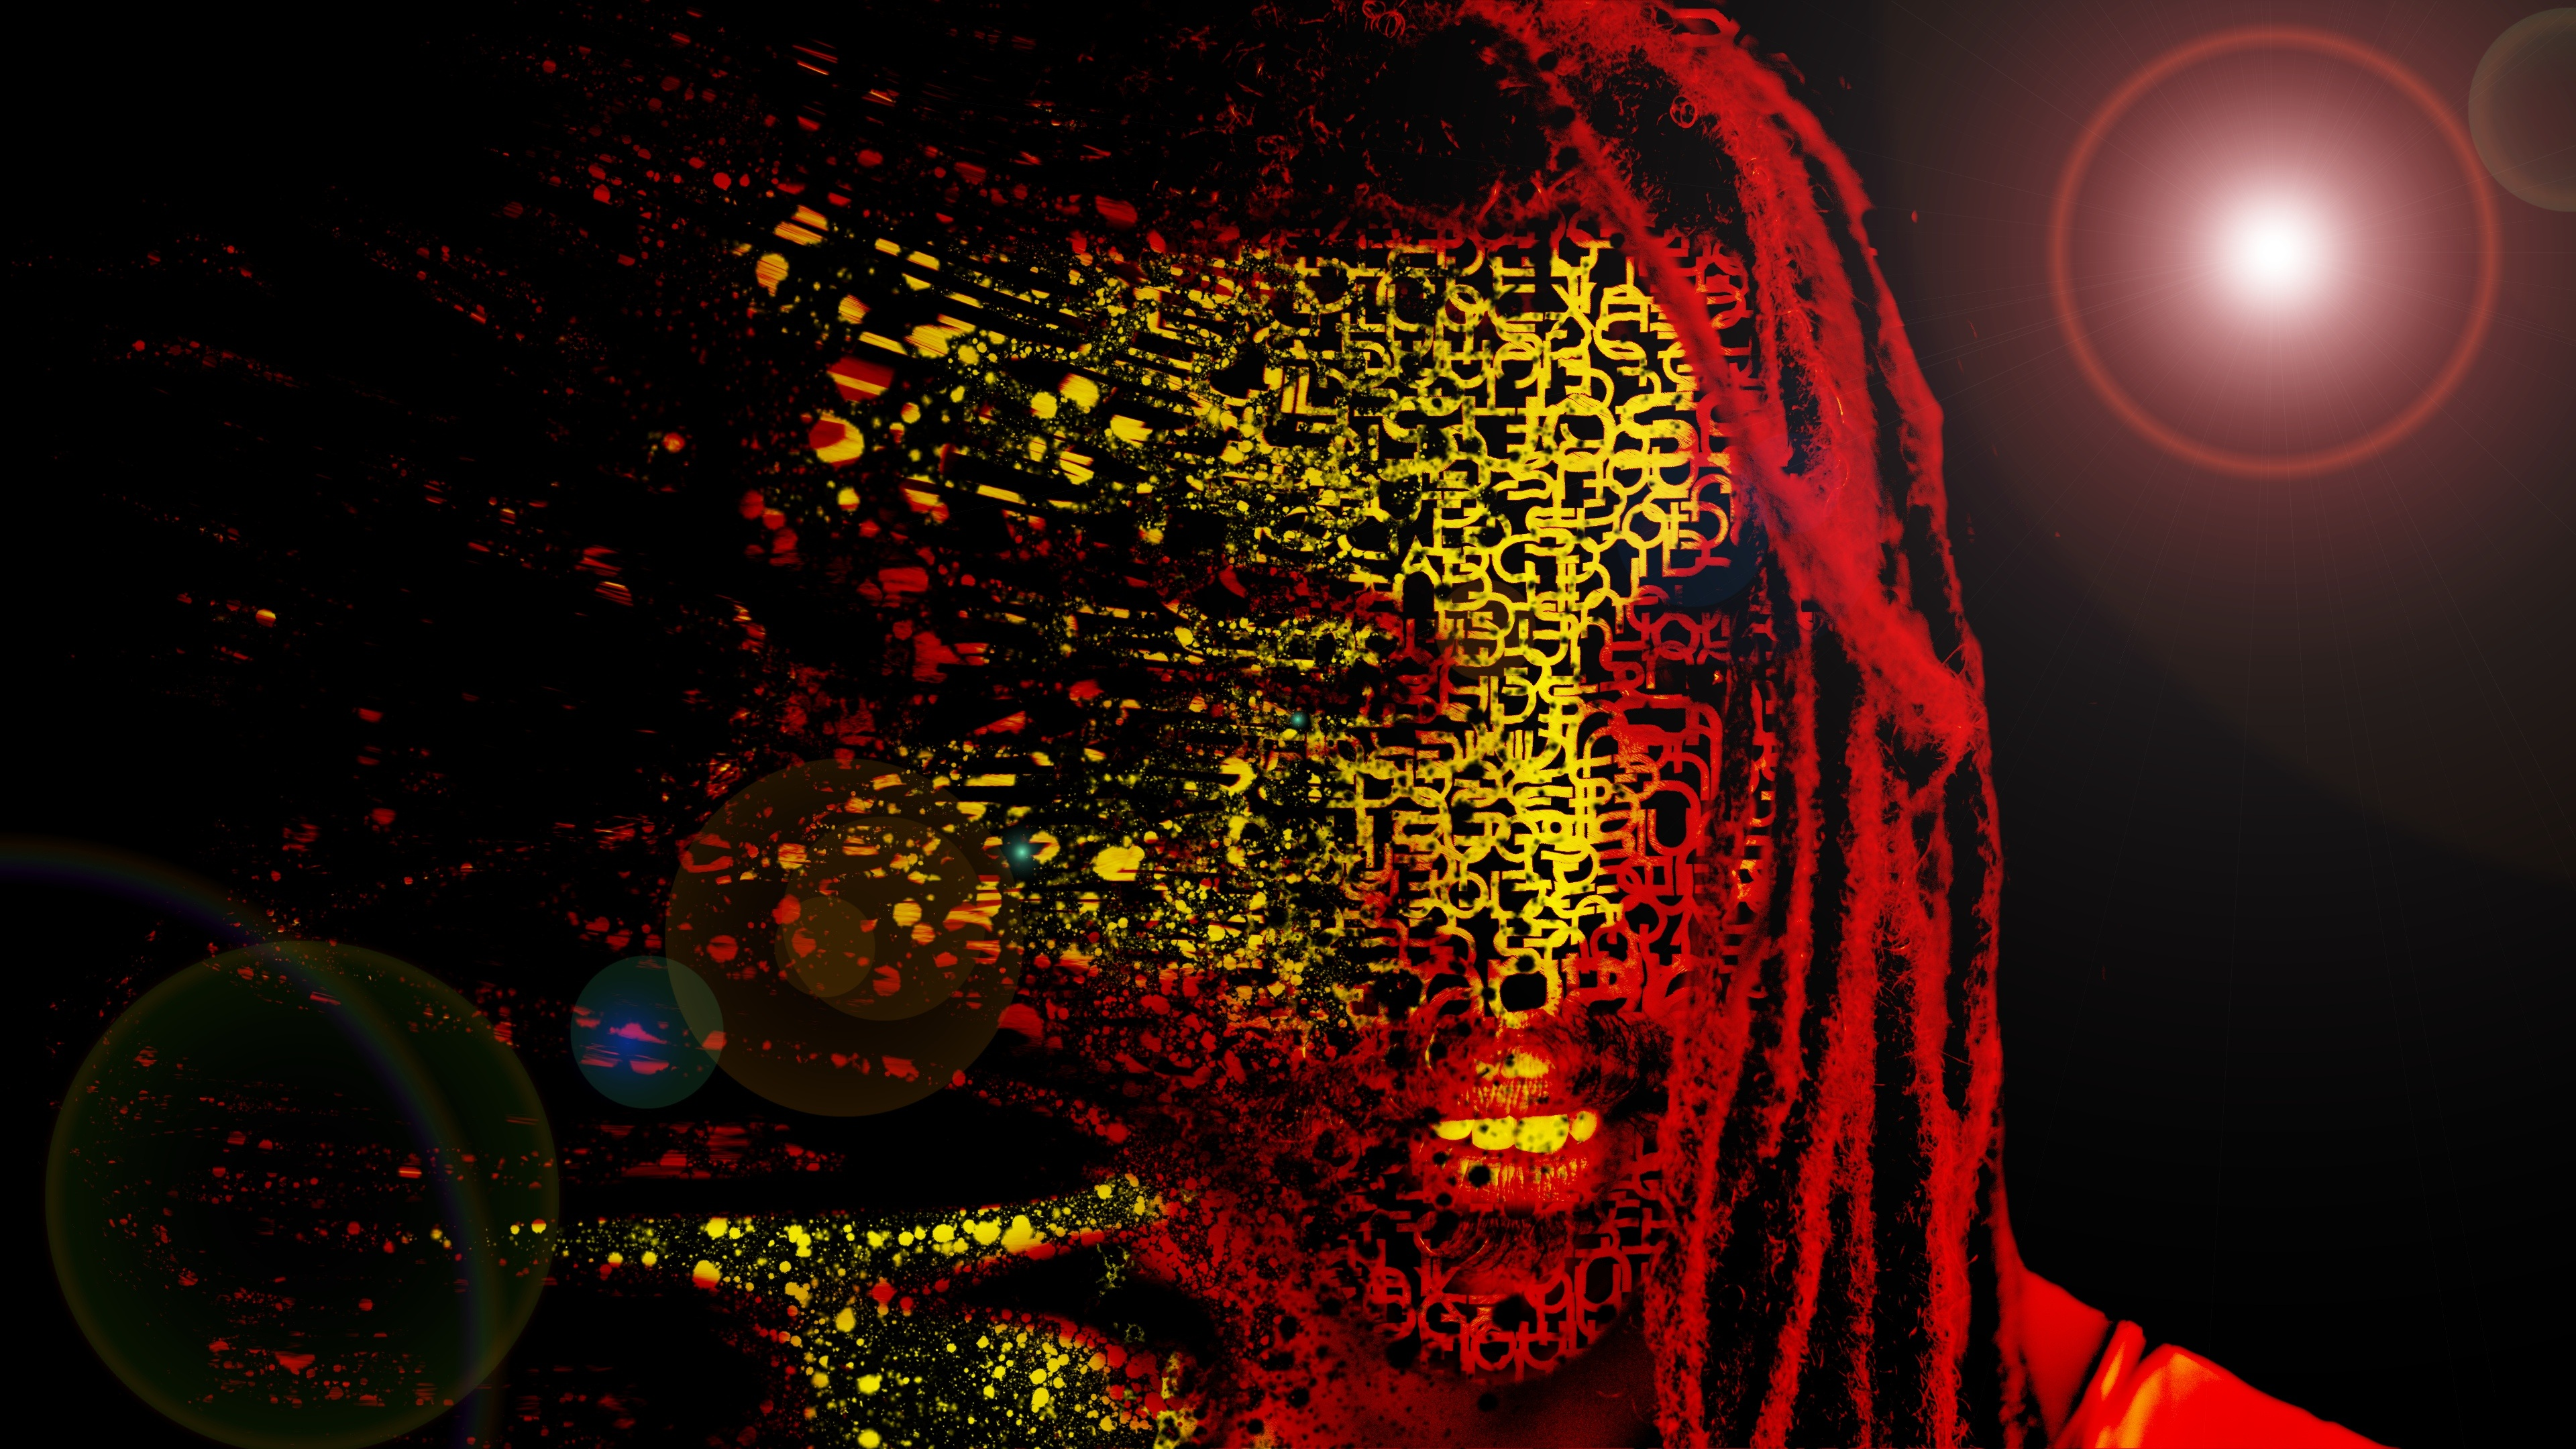 Bob Marley Mask Abstract Artwork 4k Hd Creative 4k Wallpapers